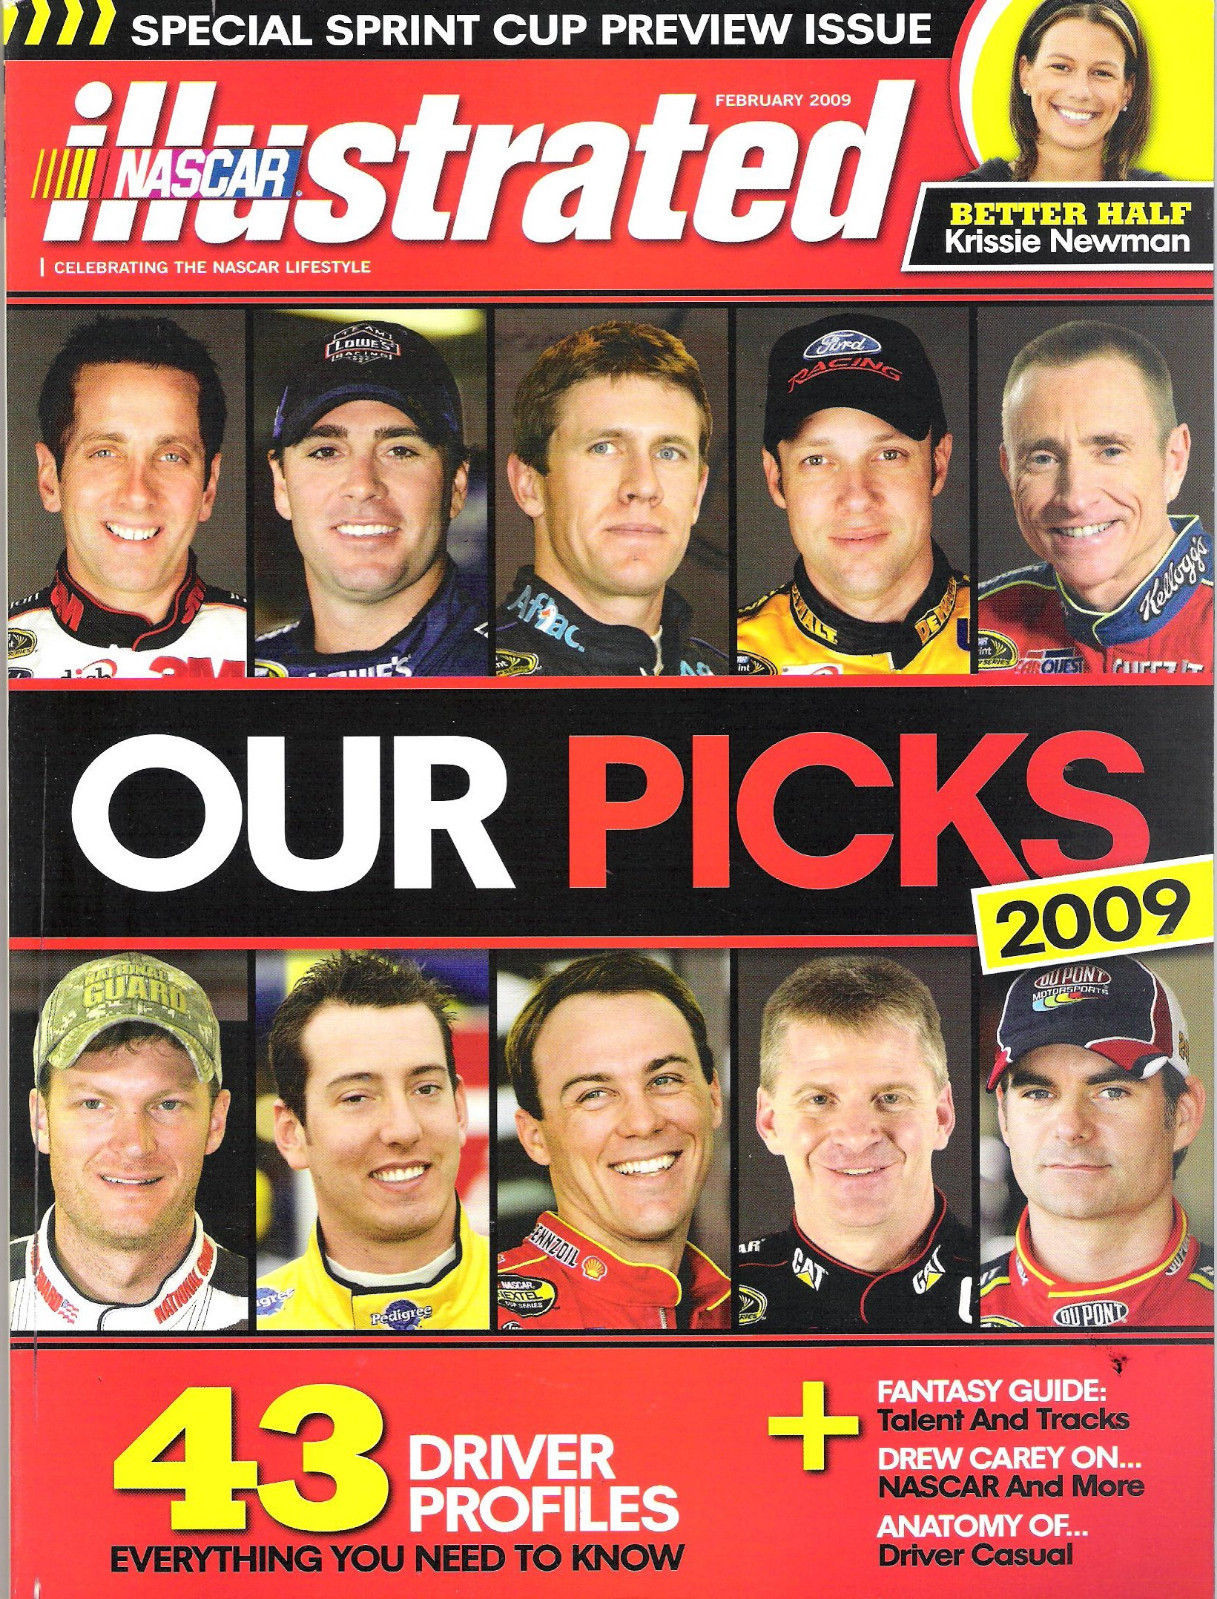 Nascar Illustrated February 2009 Special Sprint Cup Preview Issue Our Picks